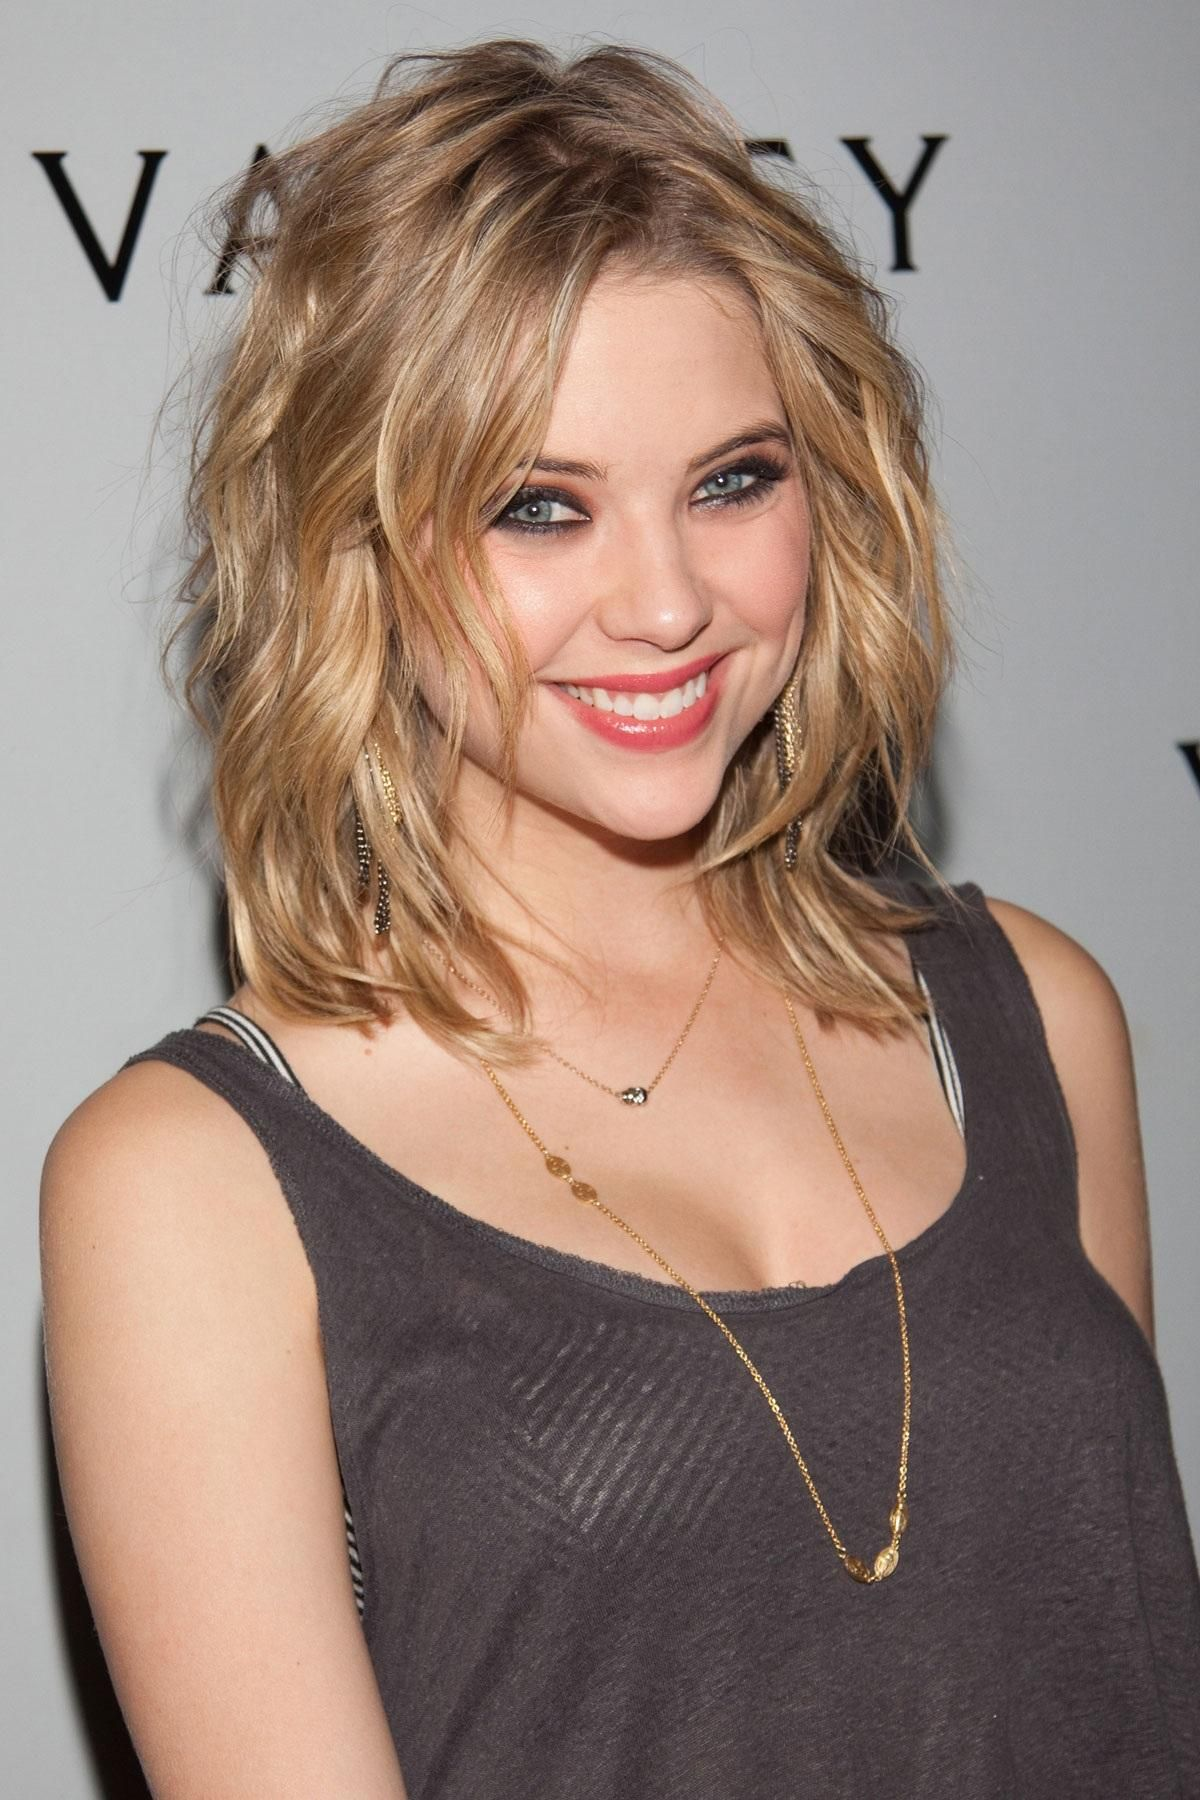 Ashley benson hair hair pinterest ashley benson hair hair